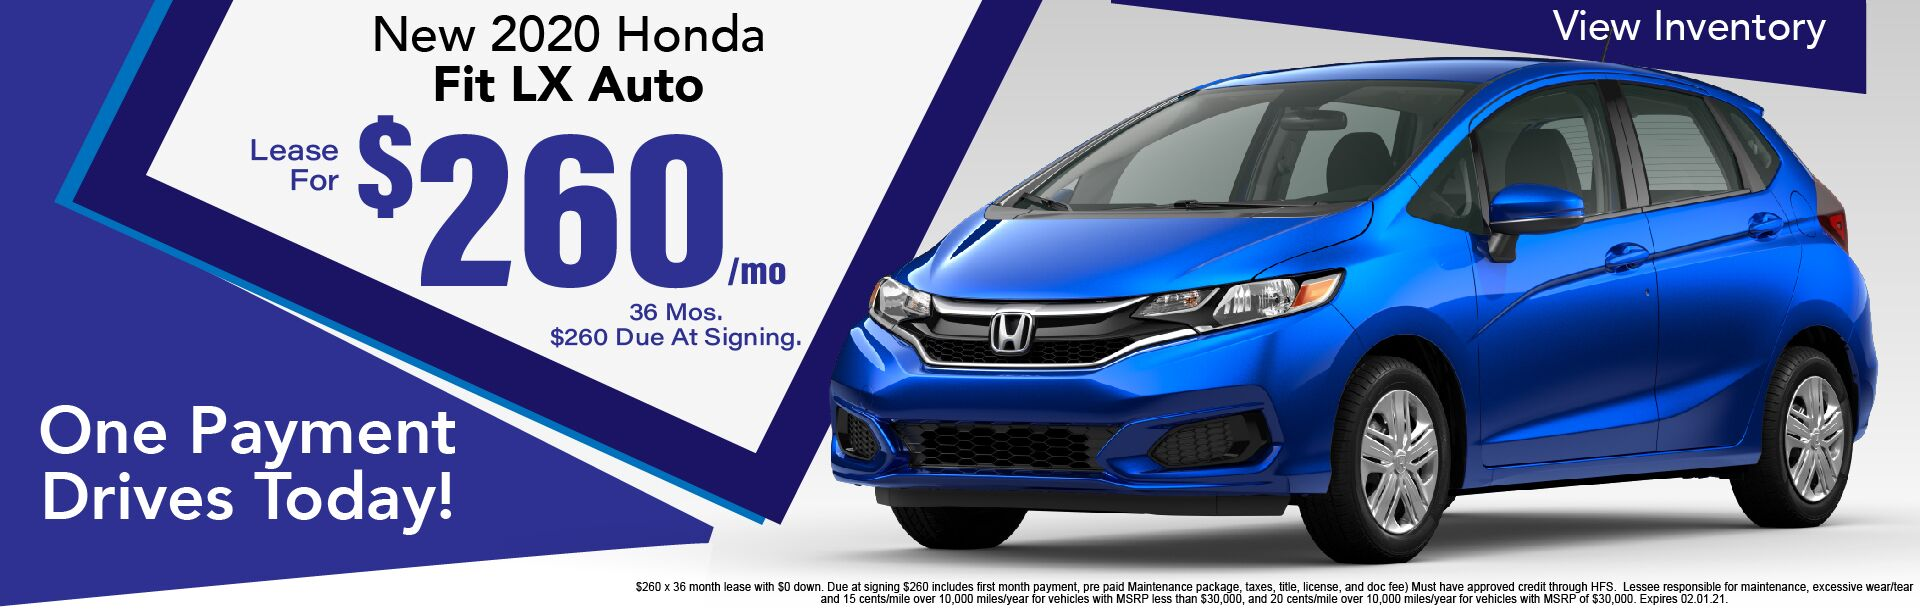 2020 Honda Fit LX Lease for $260/Month x 36 Months